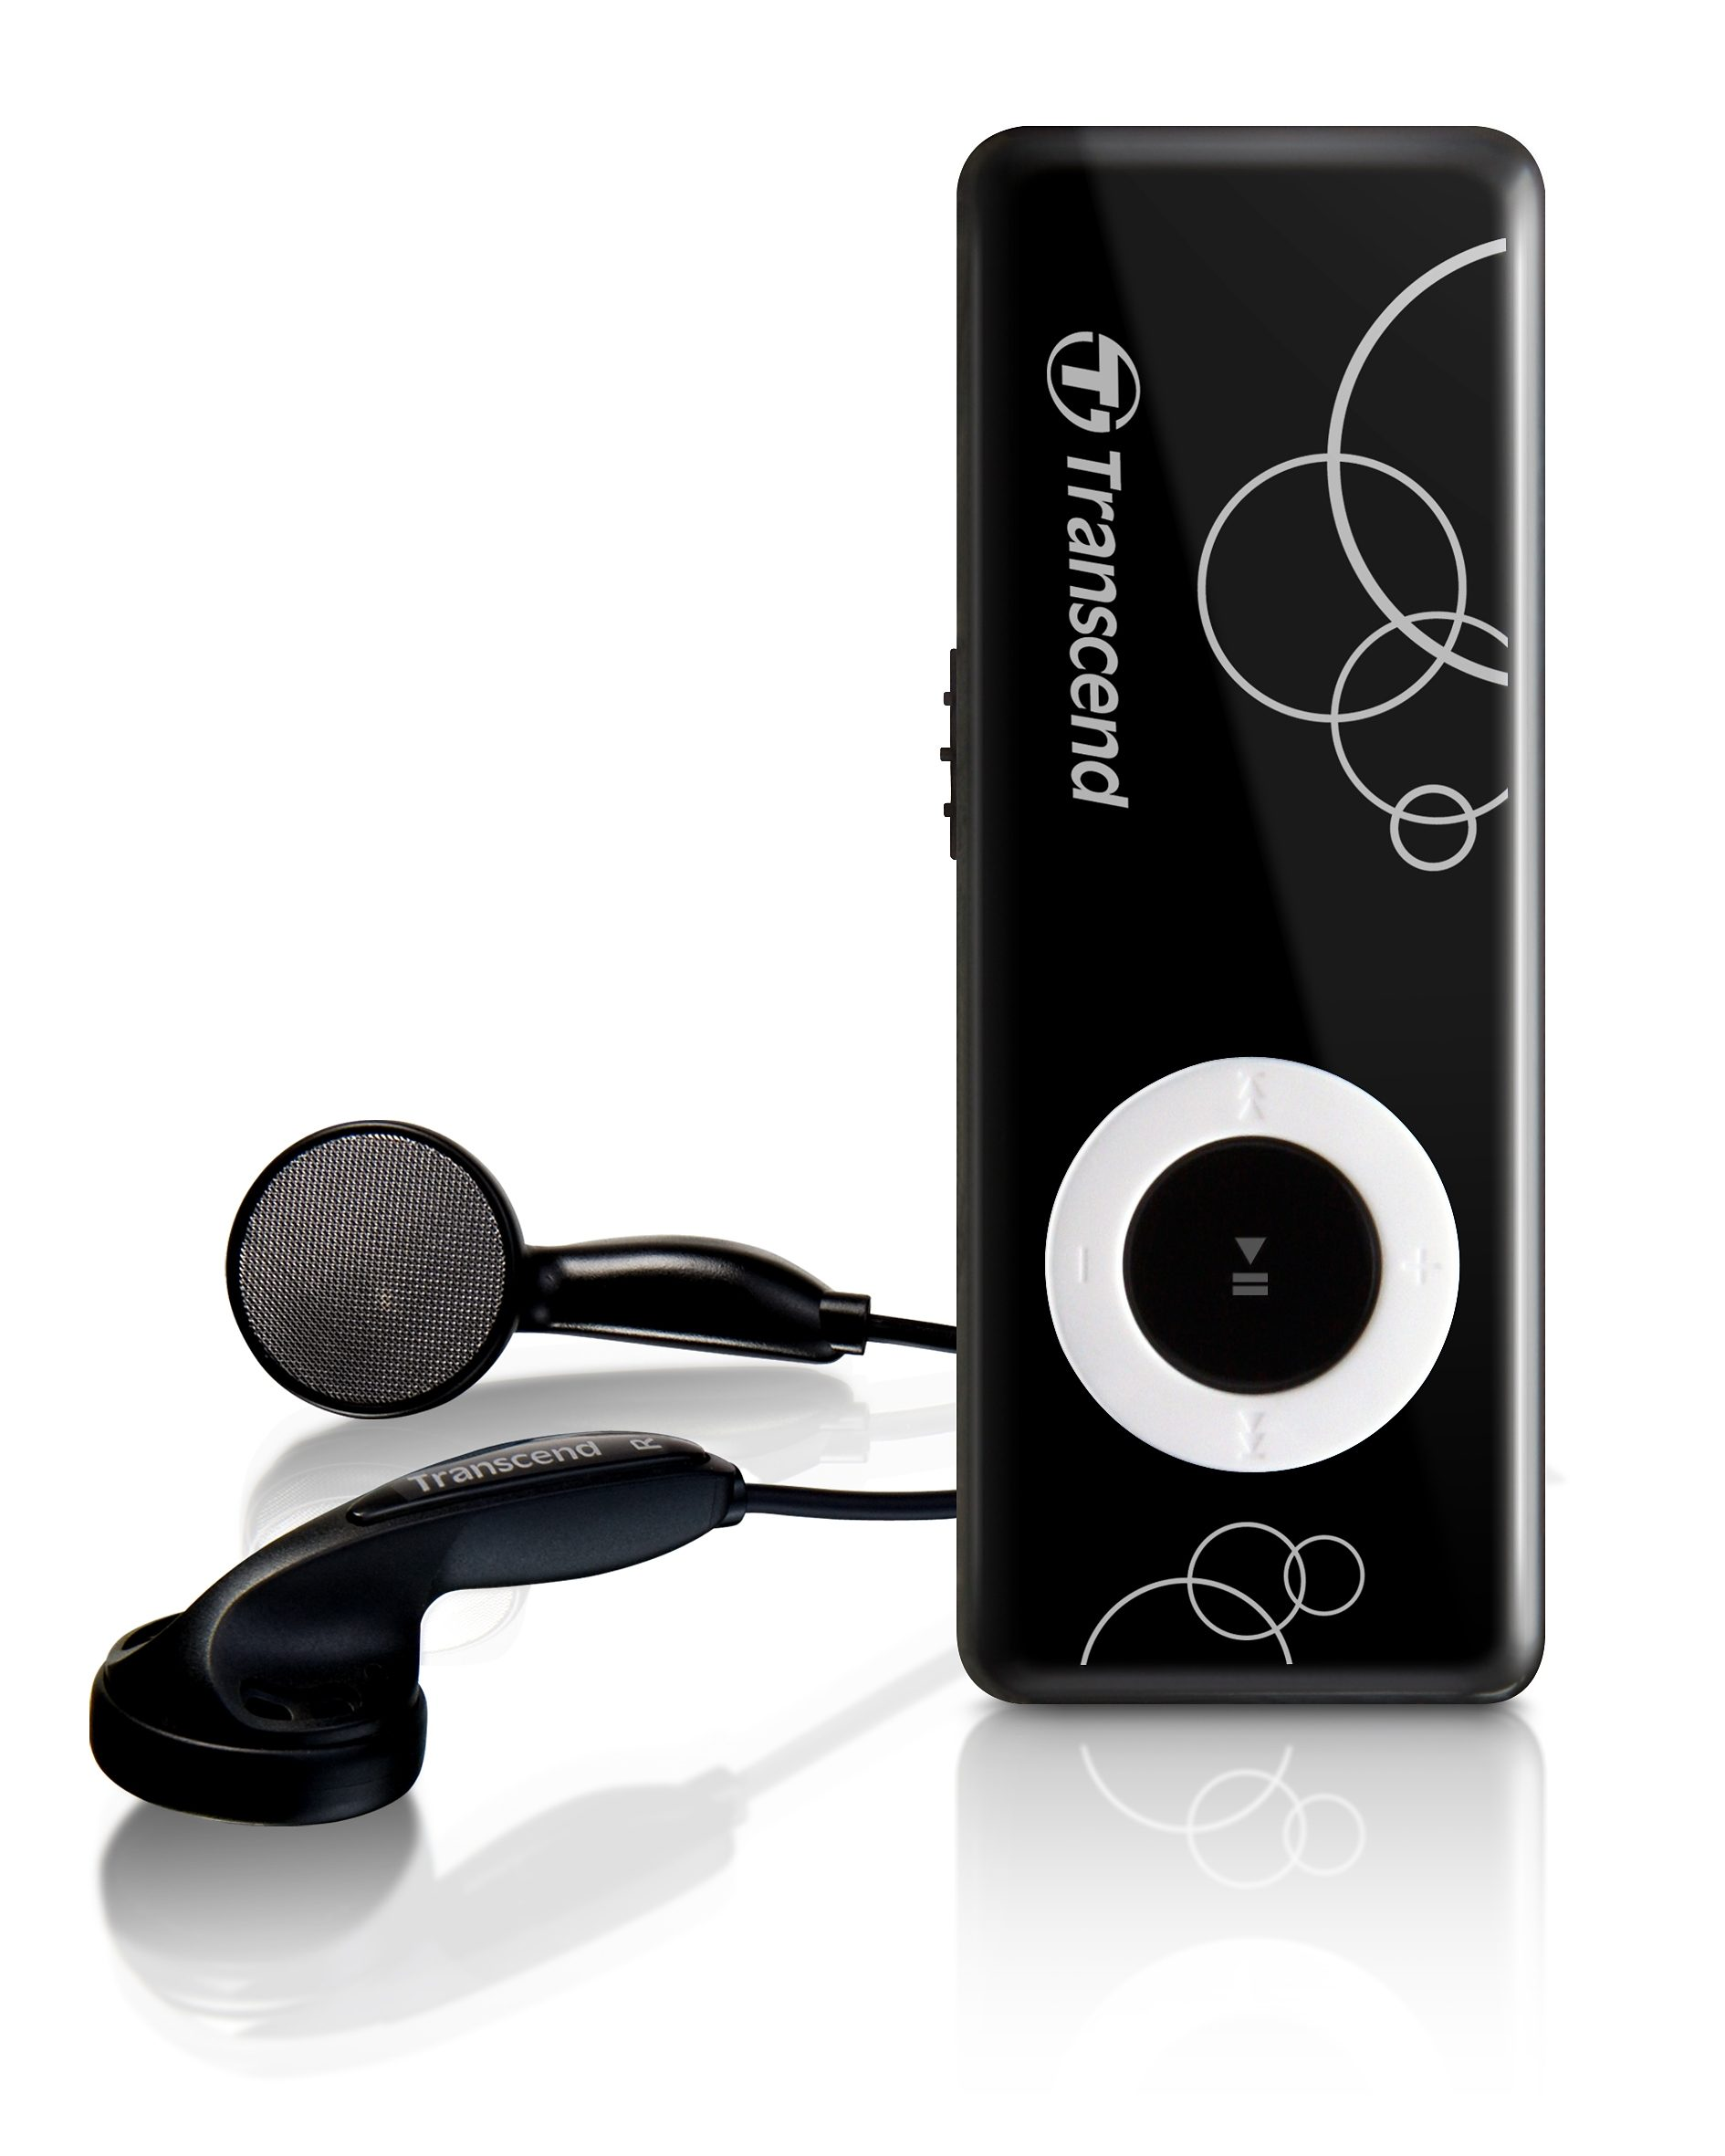 Transcend MP3 Player MP300 8GB Schwarz